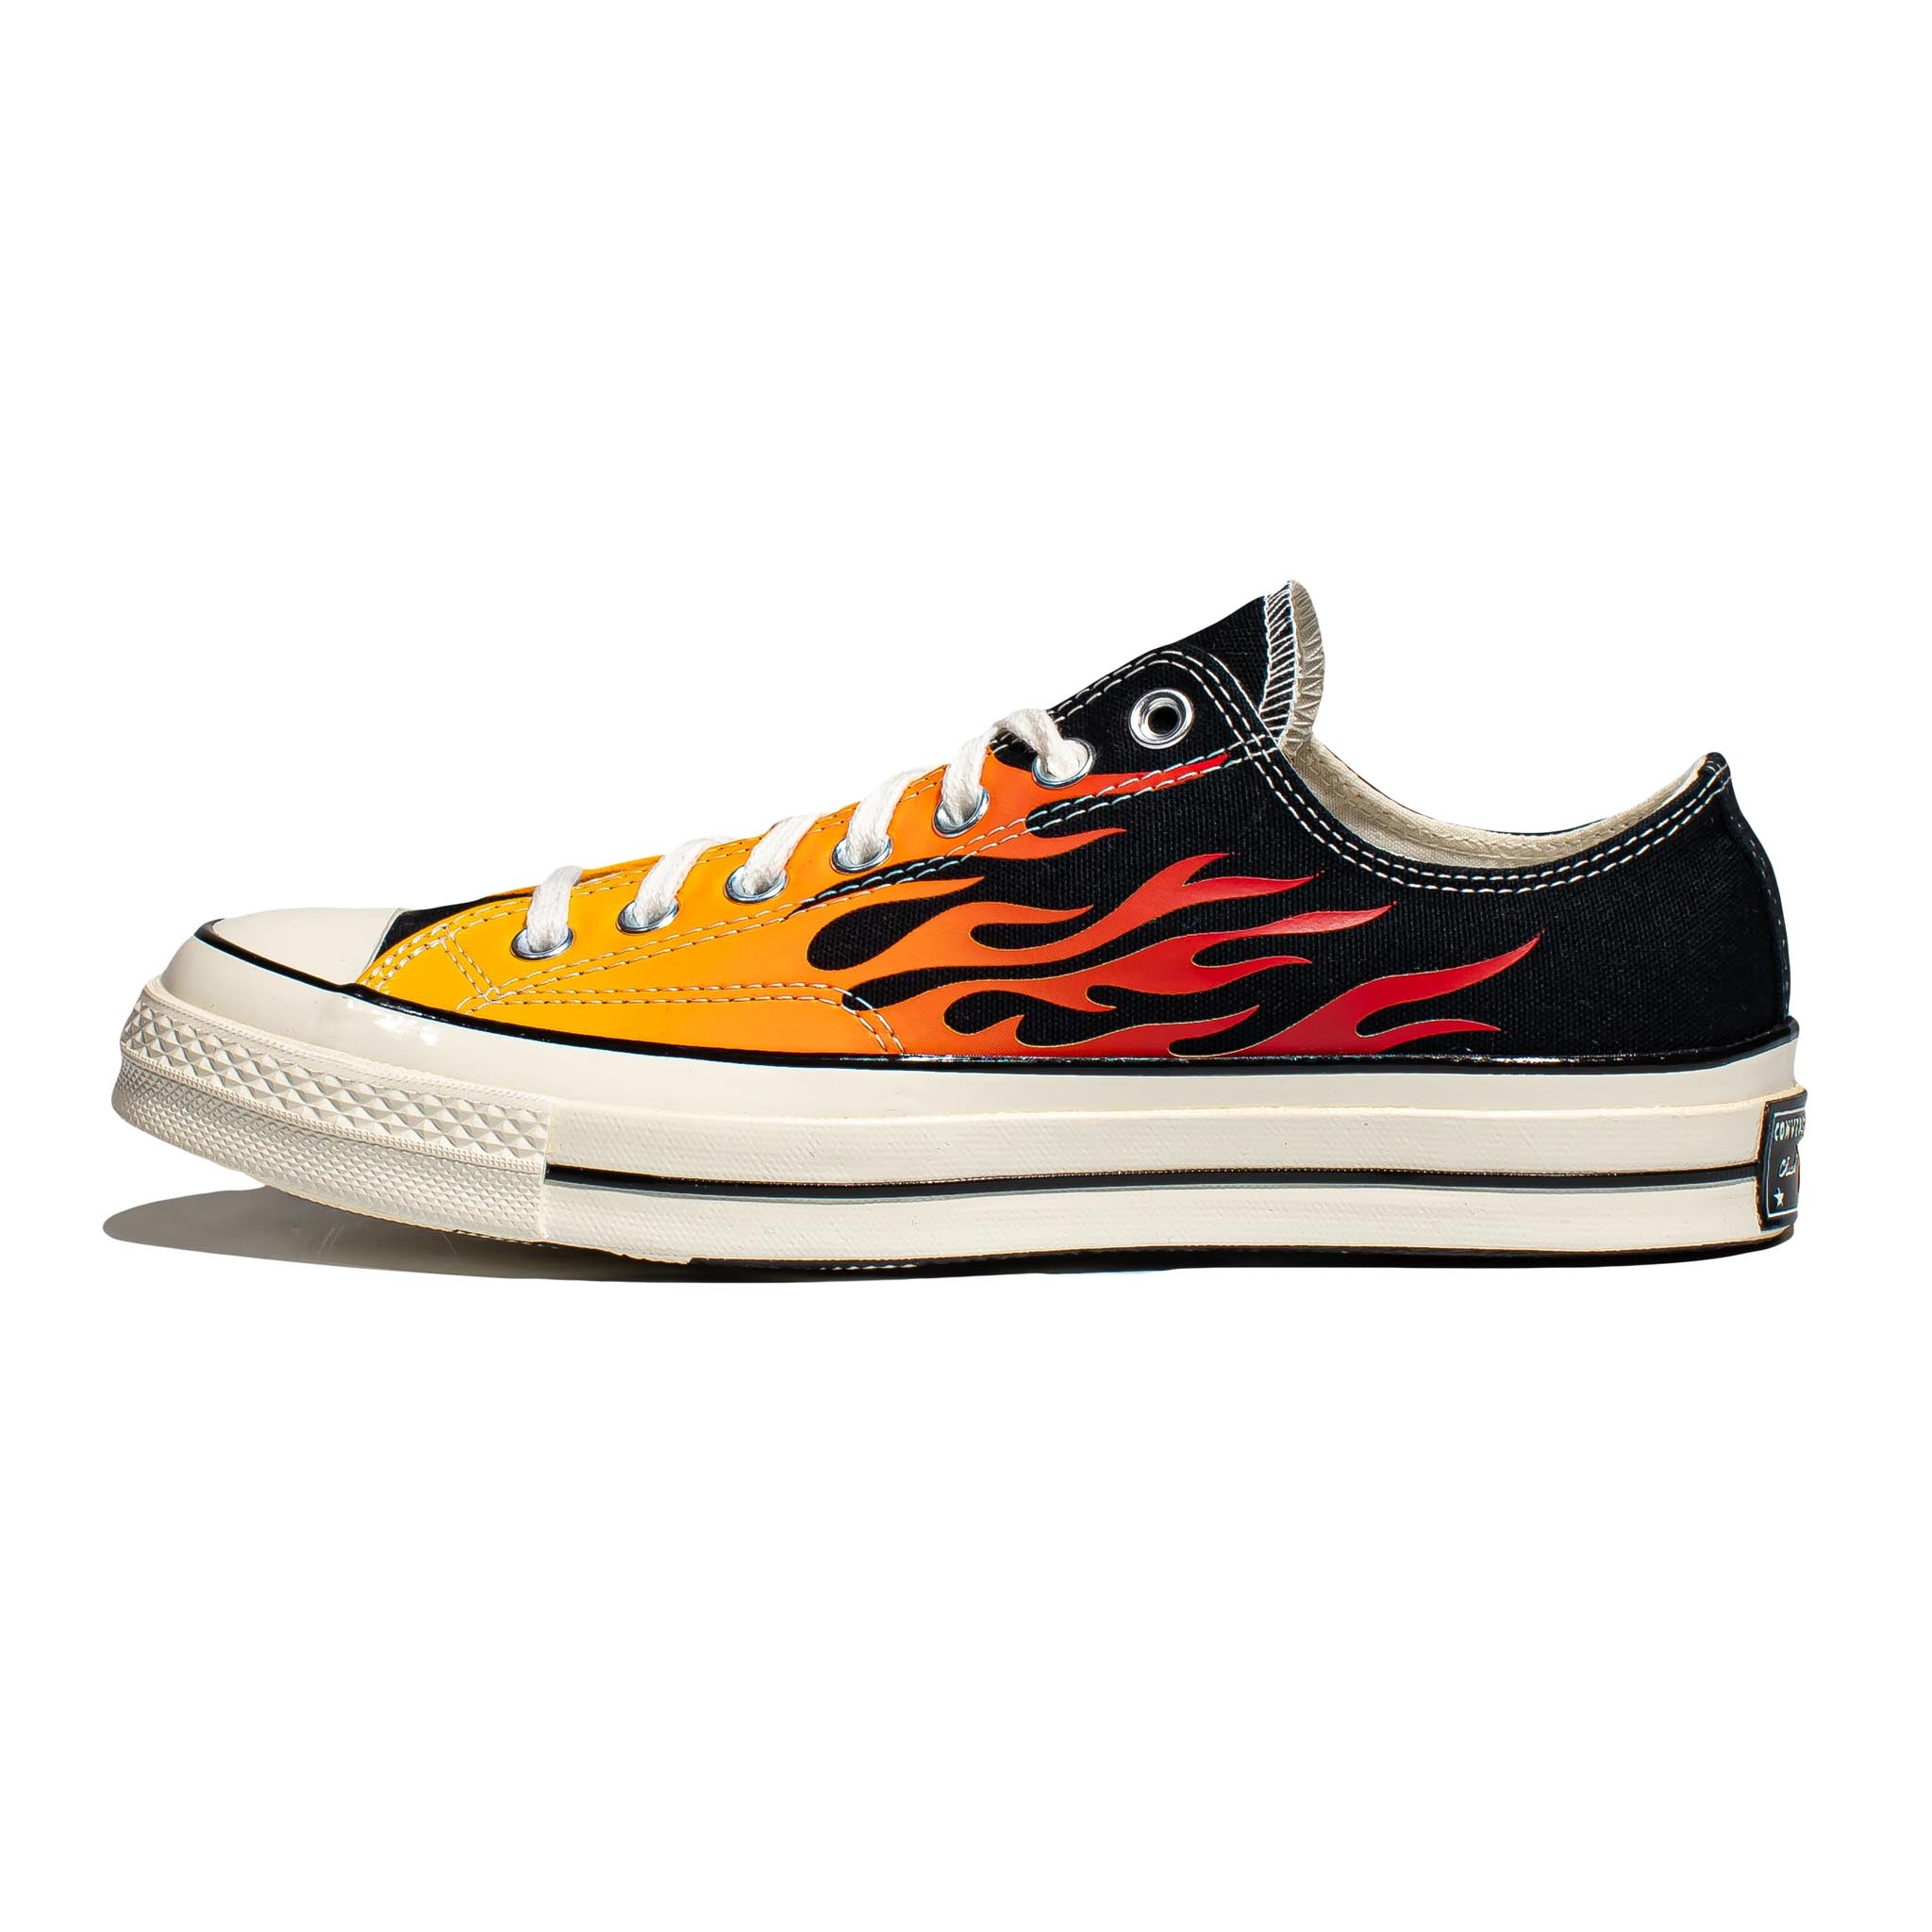 Converse Chuck 70 Low 'Archive Print' Black/Enamel Red